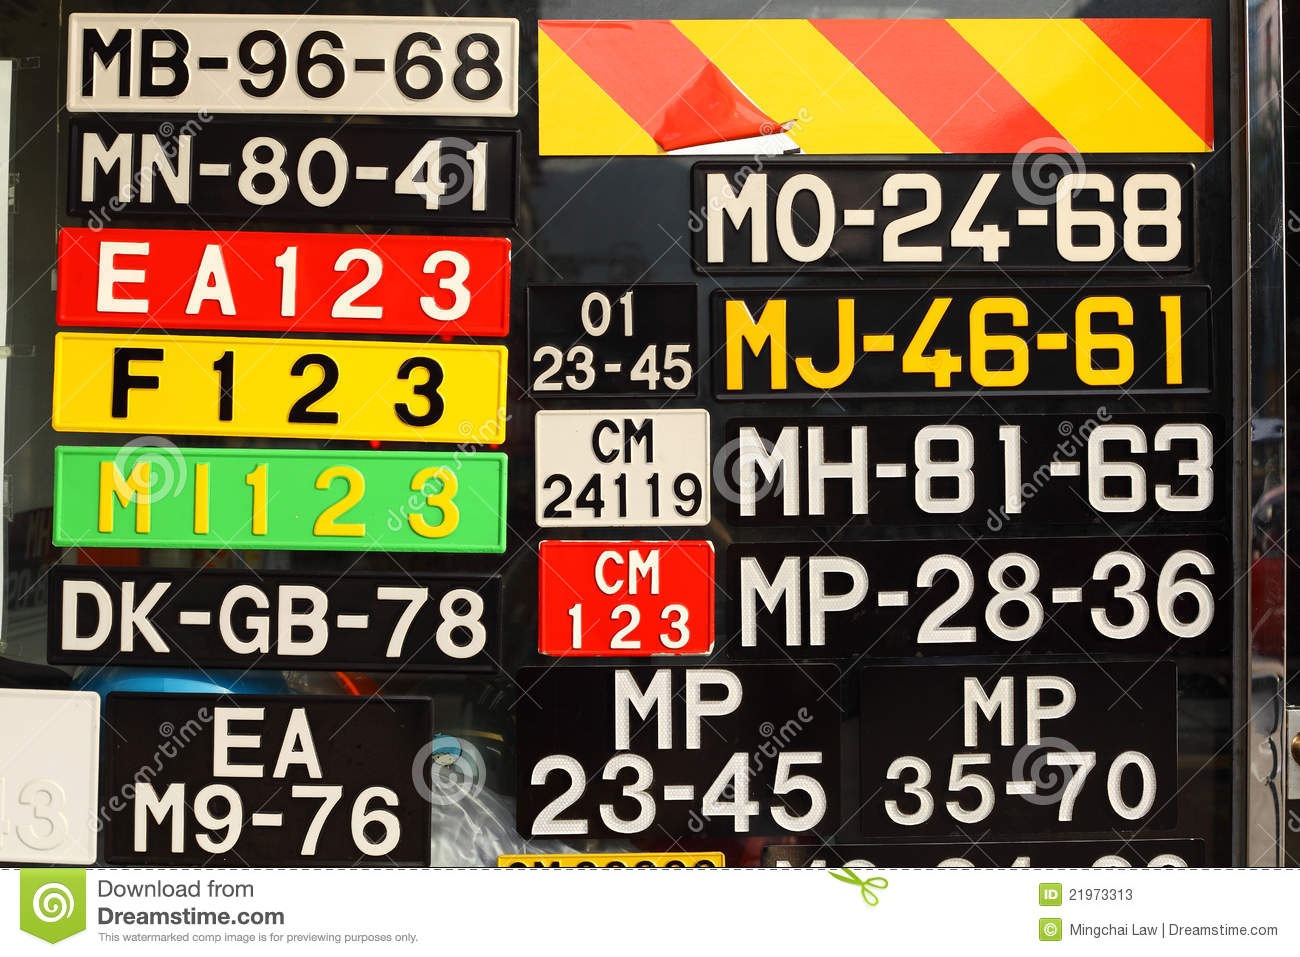 Macau Cars Number Plates